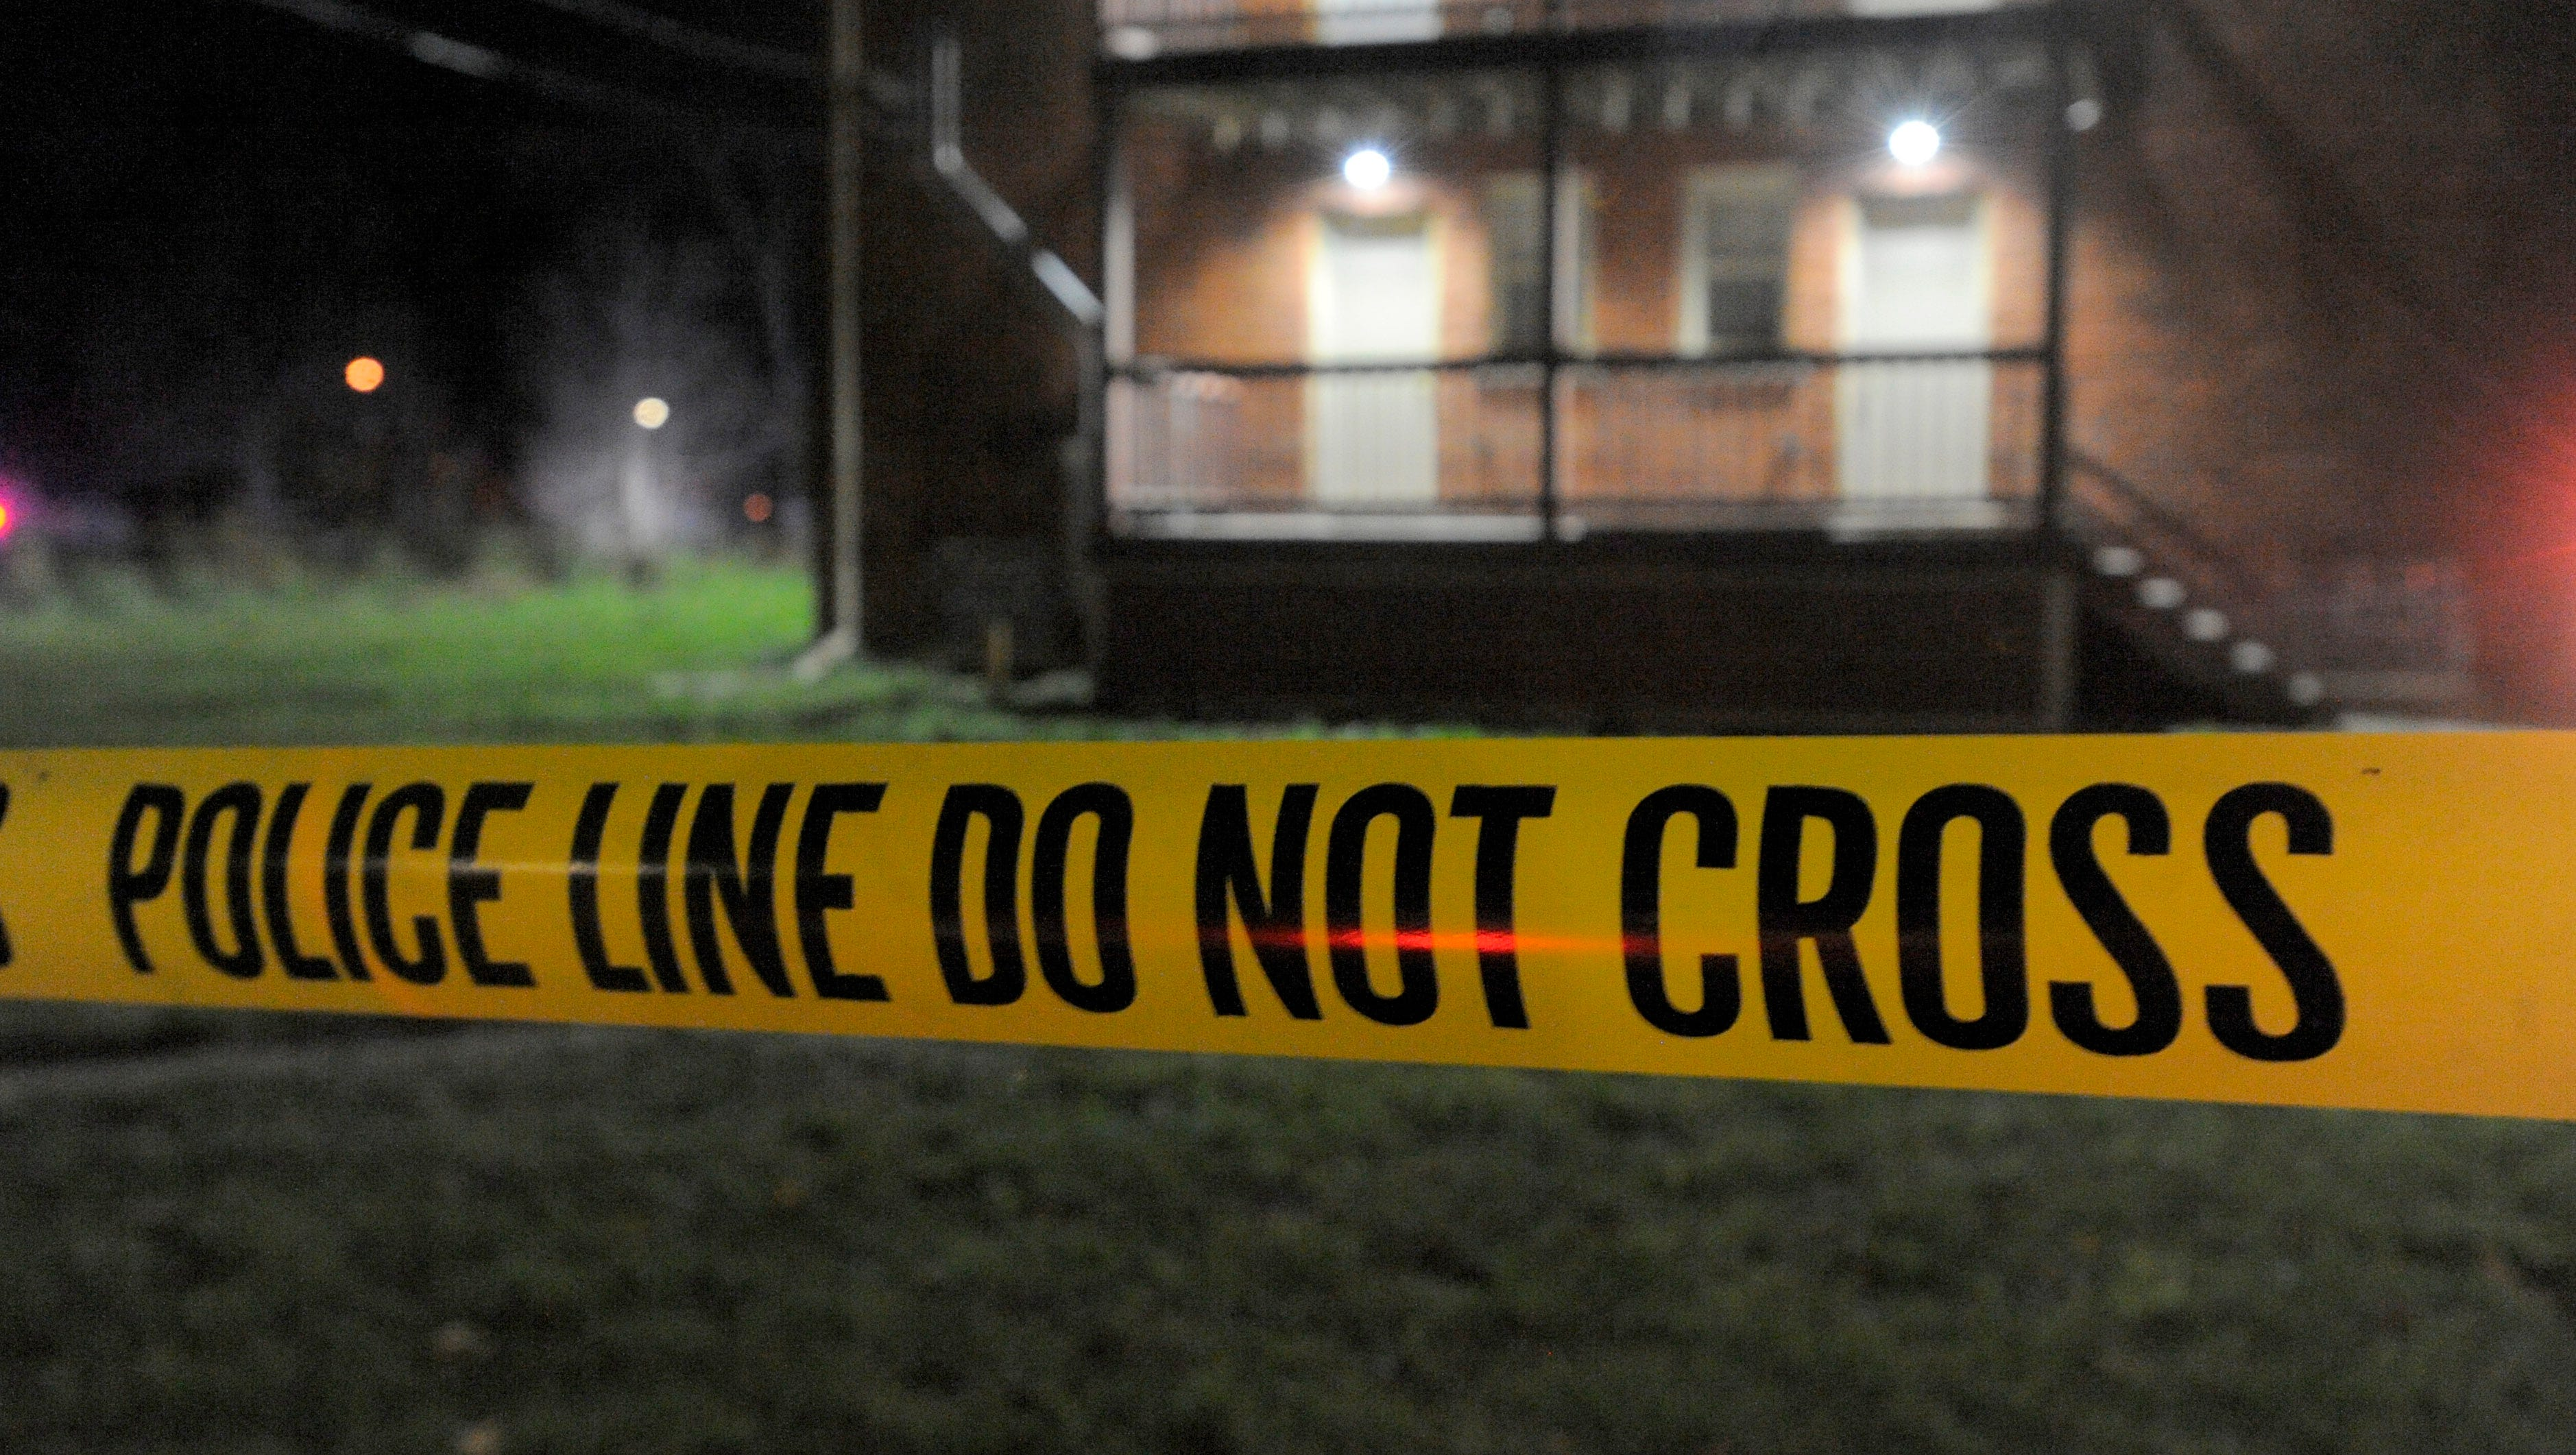 Detroit police said the incident occurred at 7:10 p.m. in the 5000 block of Rohns Street.